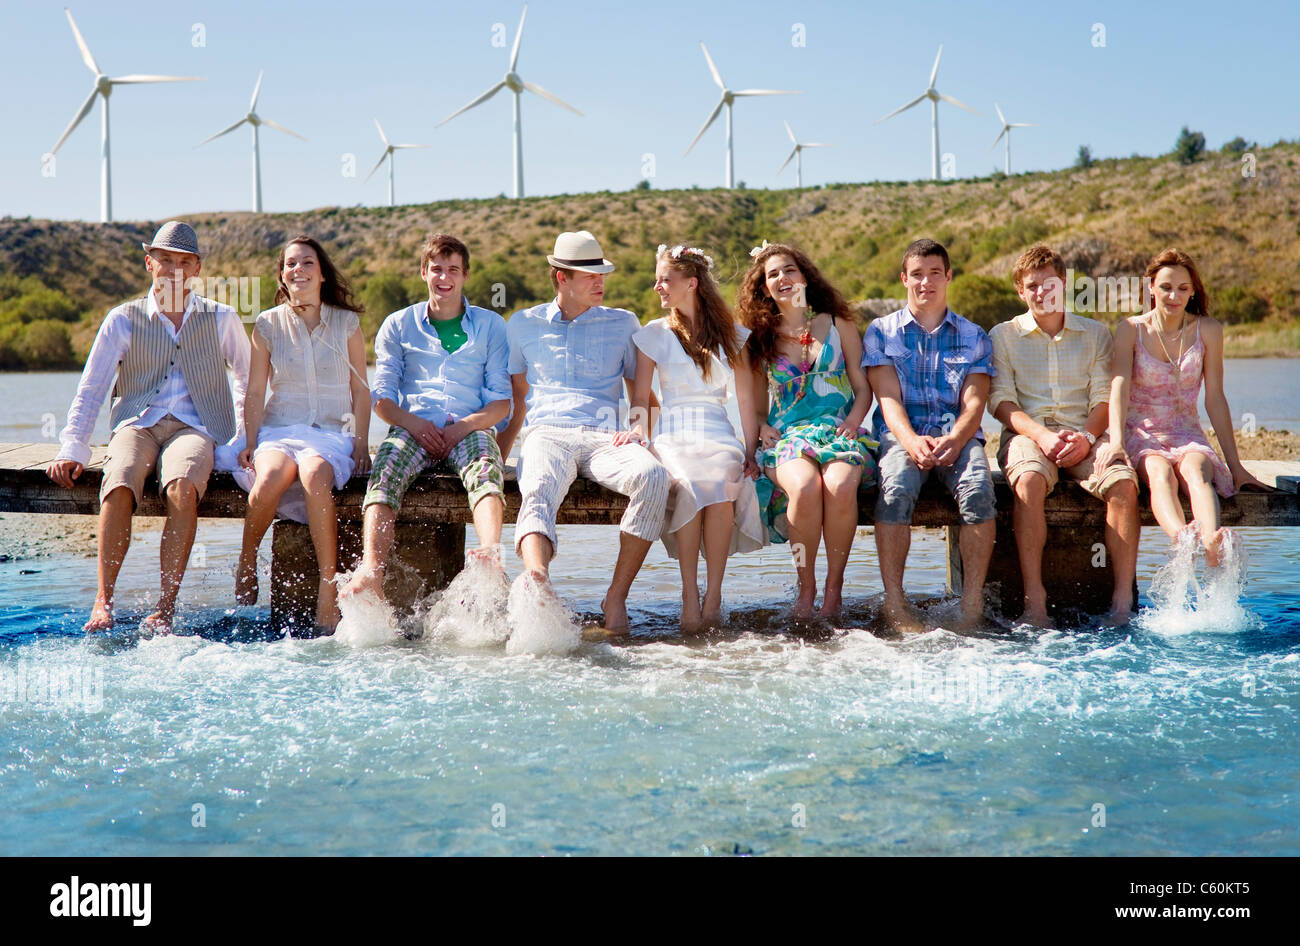 Friends kicking water from deck - Stock Image